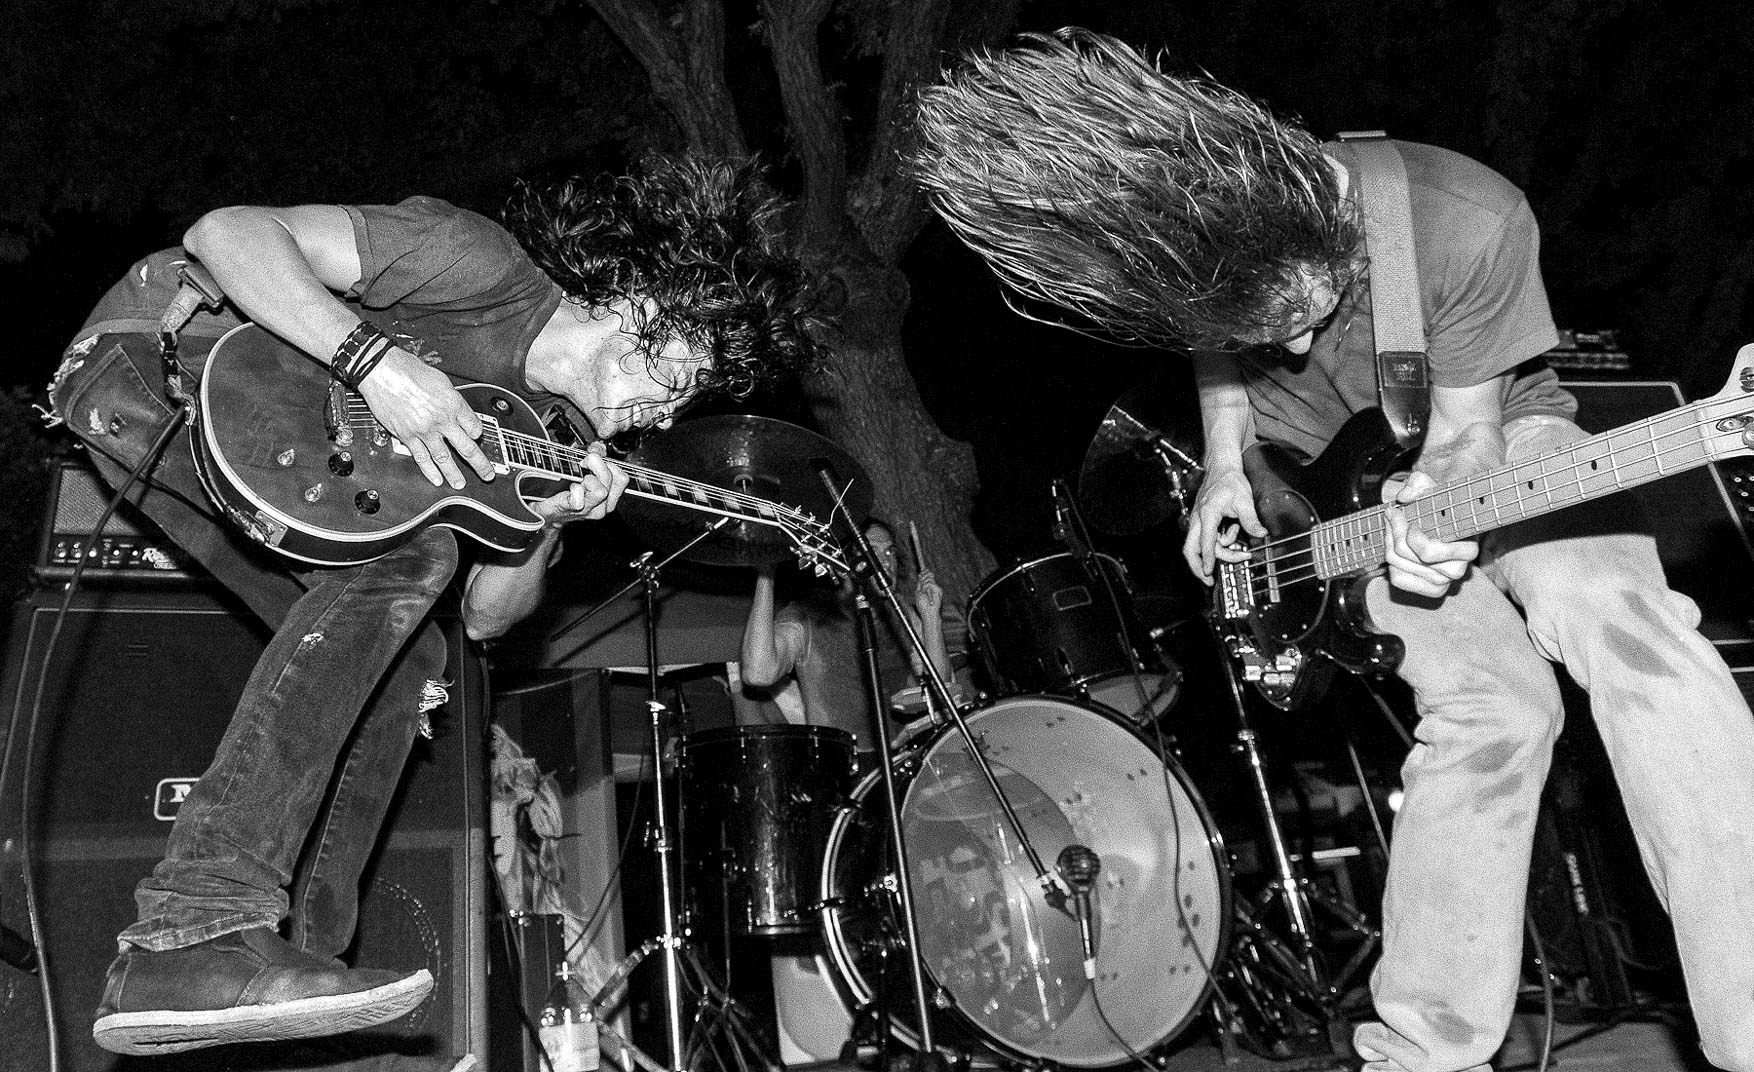 Black and white photograph of Aloke  playing electric guitar and headbanging on stage